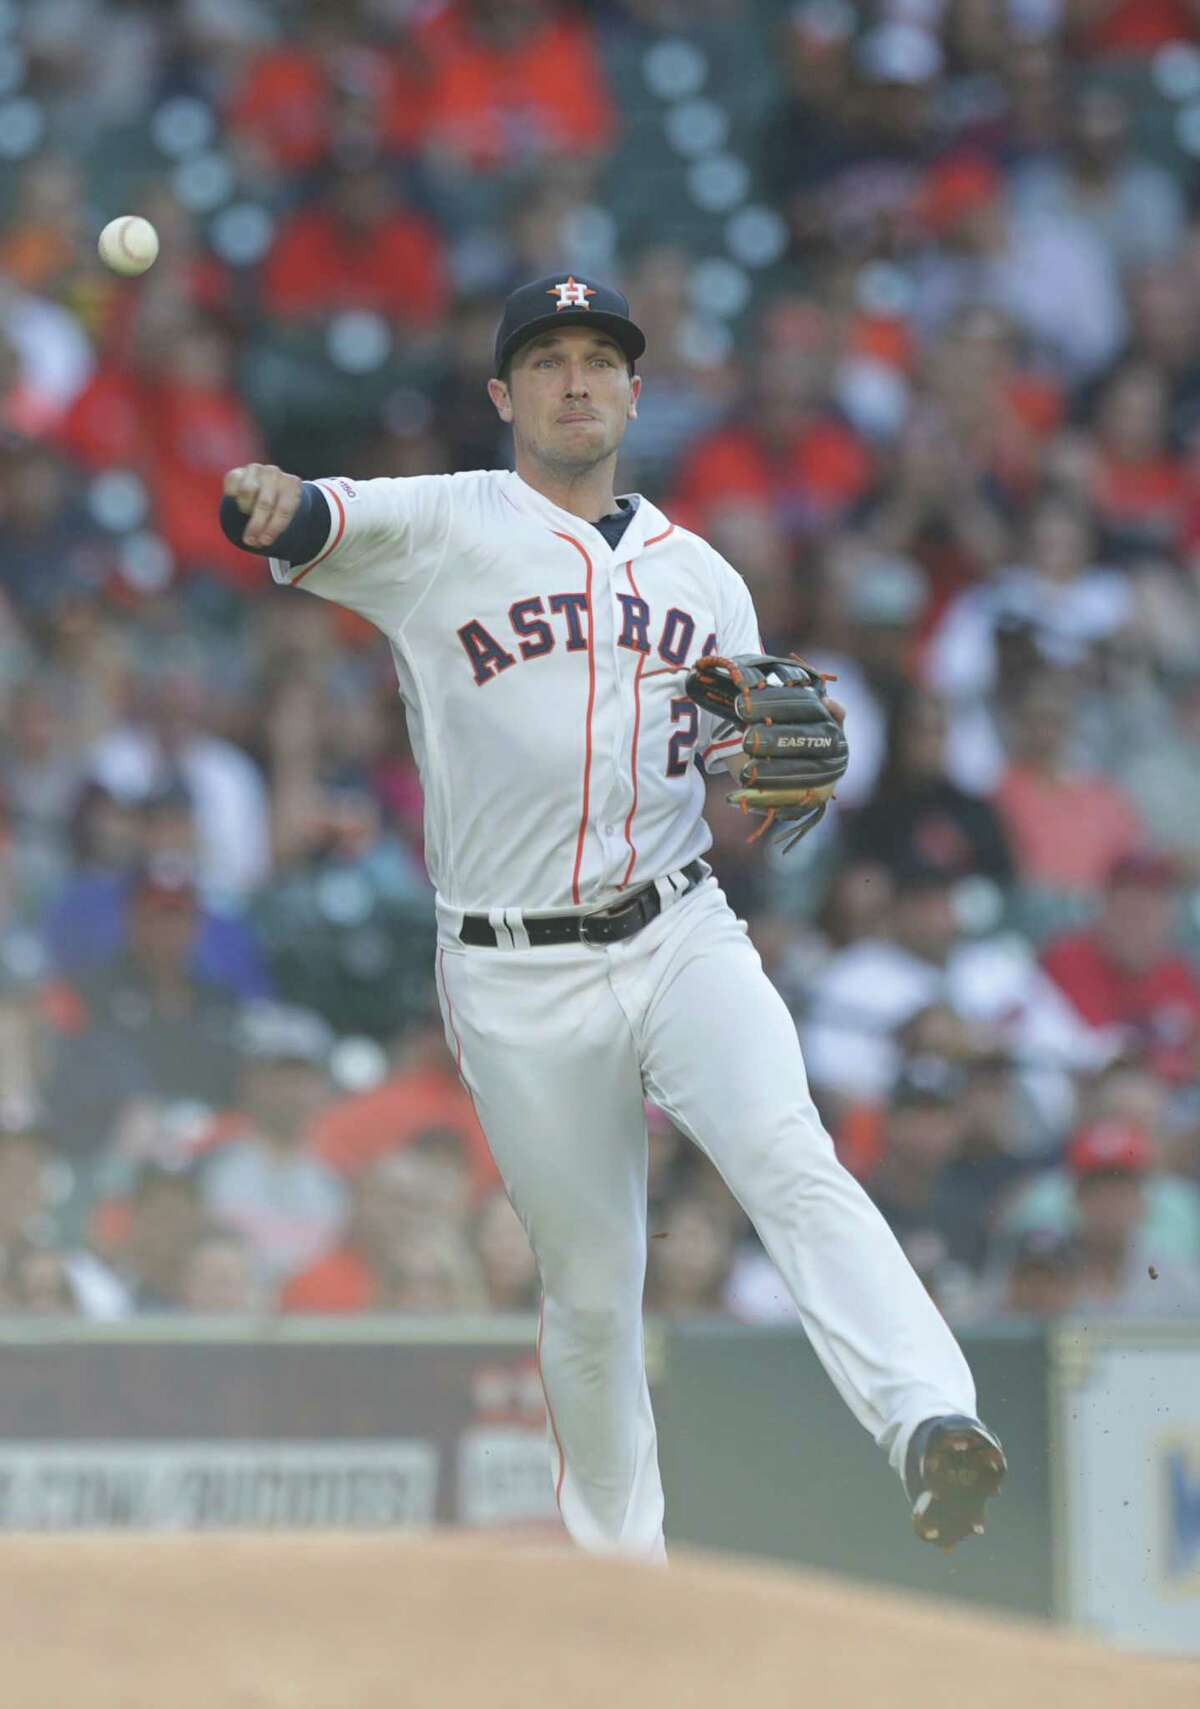 Houston Astros third baseman Alex Bregman (2) throws to first to get out Cleveland Indians first baseman Carlos Santana (41) during the first inning of a major league baseball game at Minute Maid Park Sunday, April 28, 2019, in Houston.